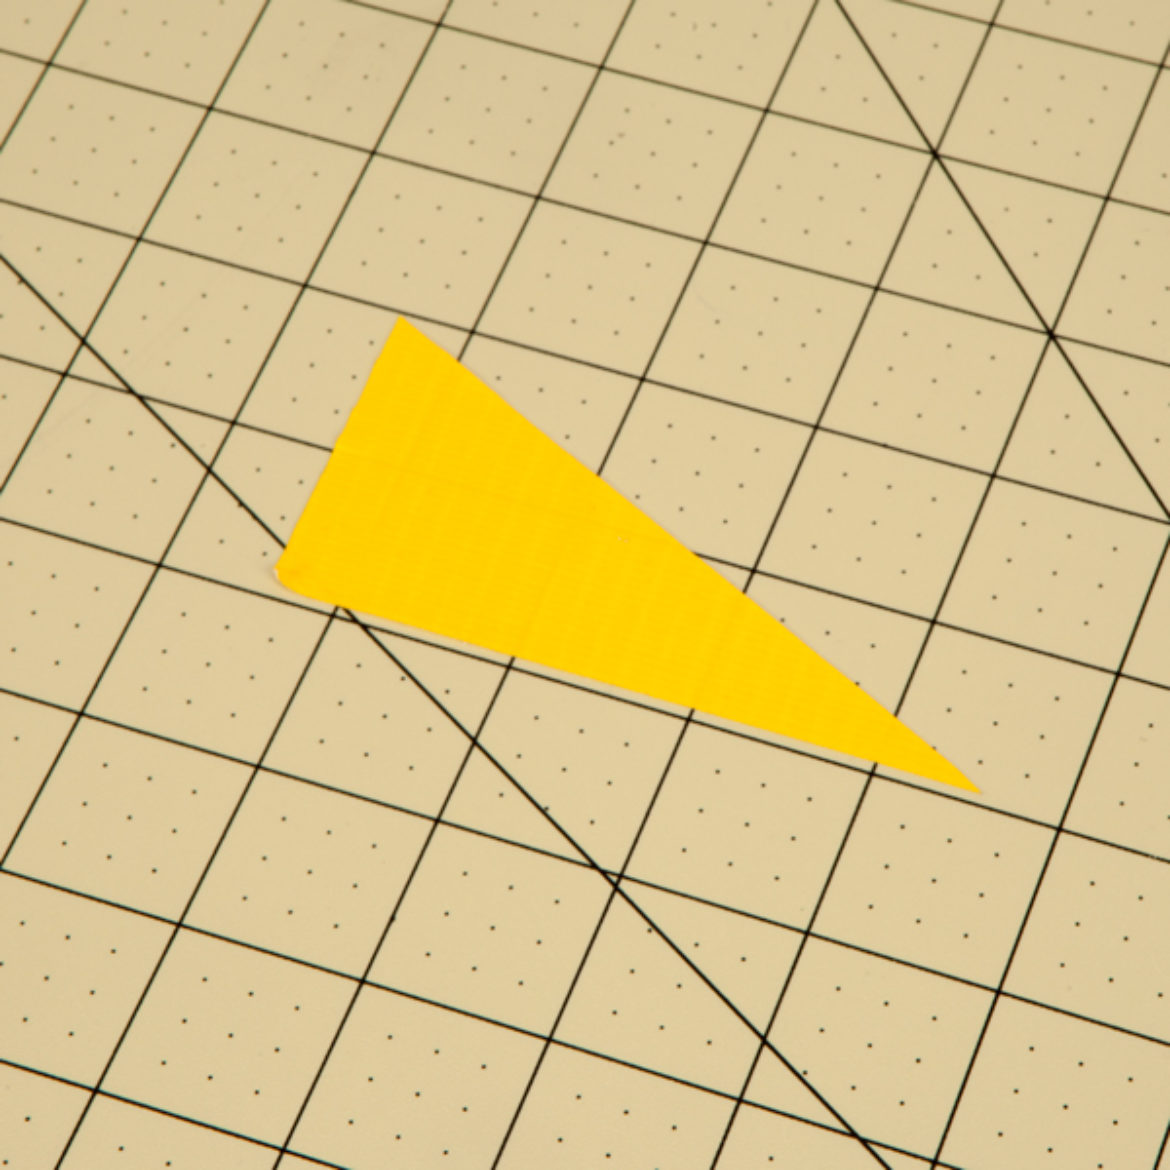 Right triangle cut out of a single strip of Duck Tape